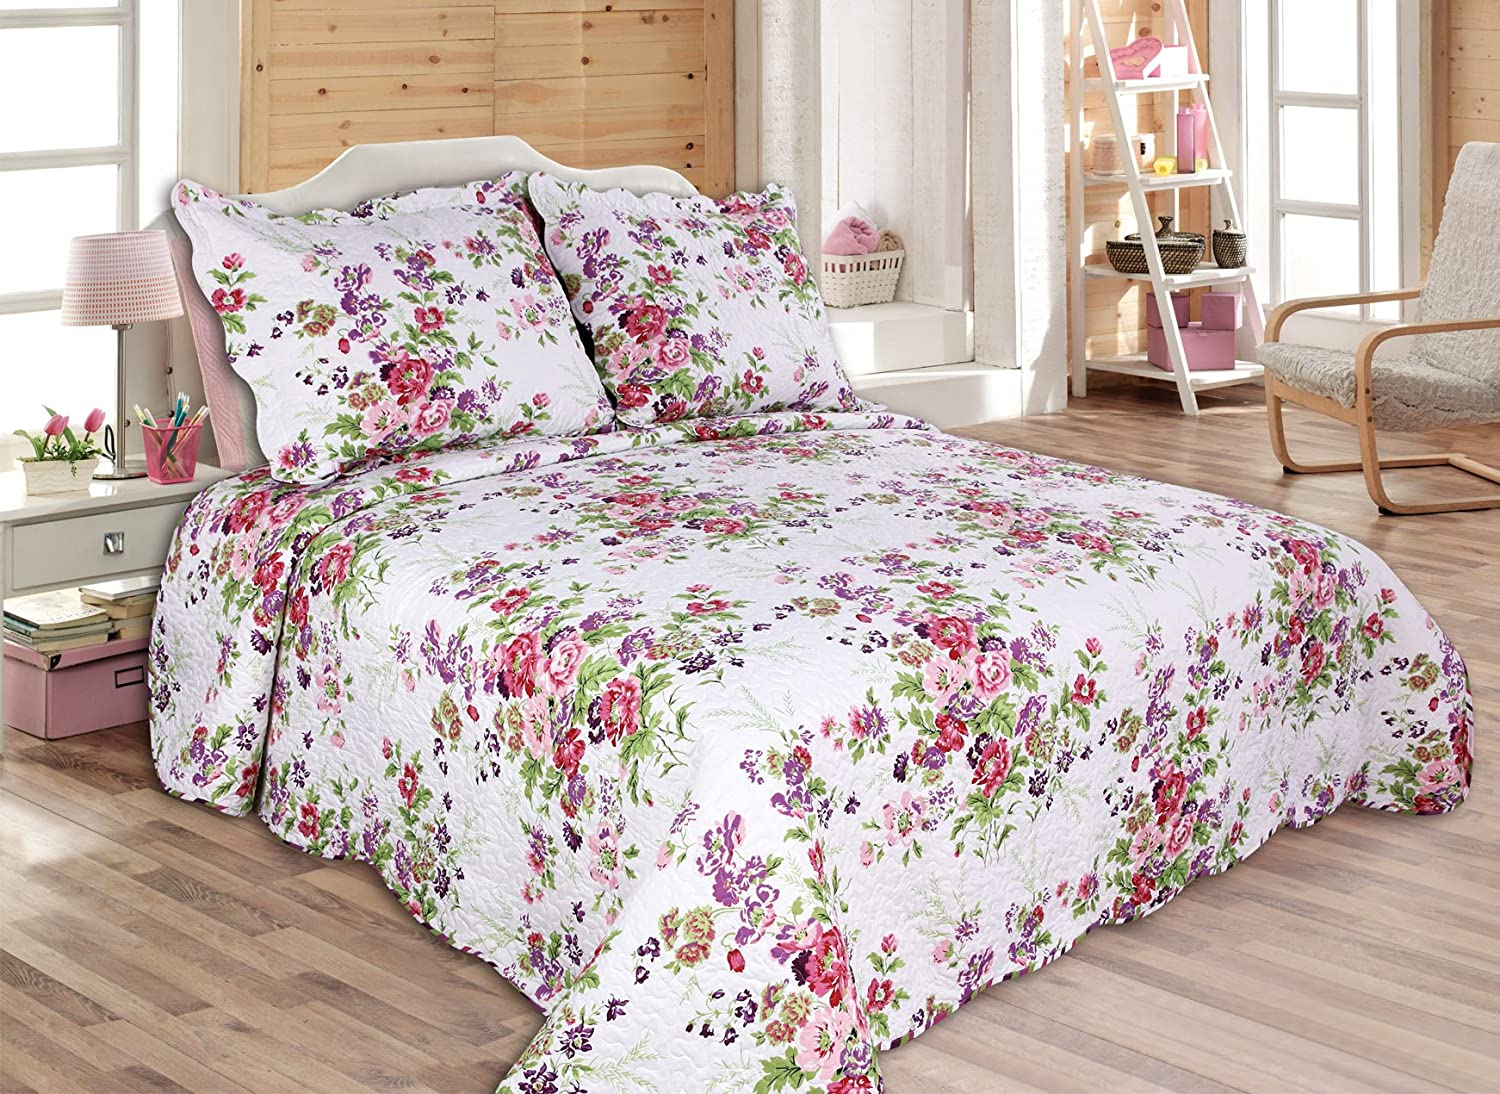 3-piece Reversible coverlet, Quilt Set, bedspread, Full-Queen